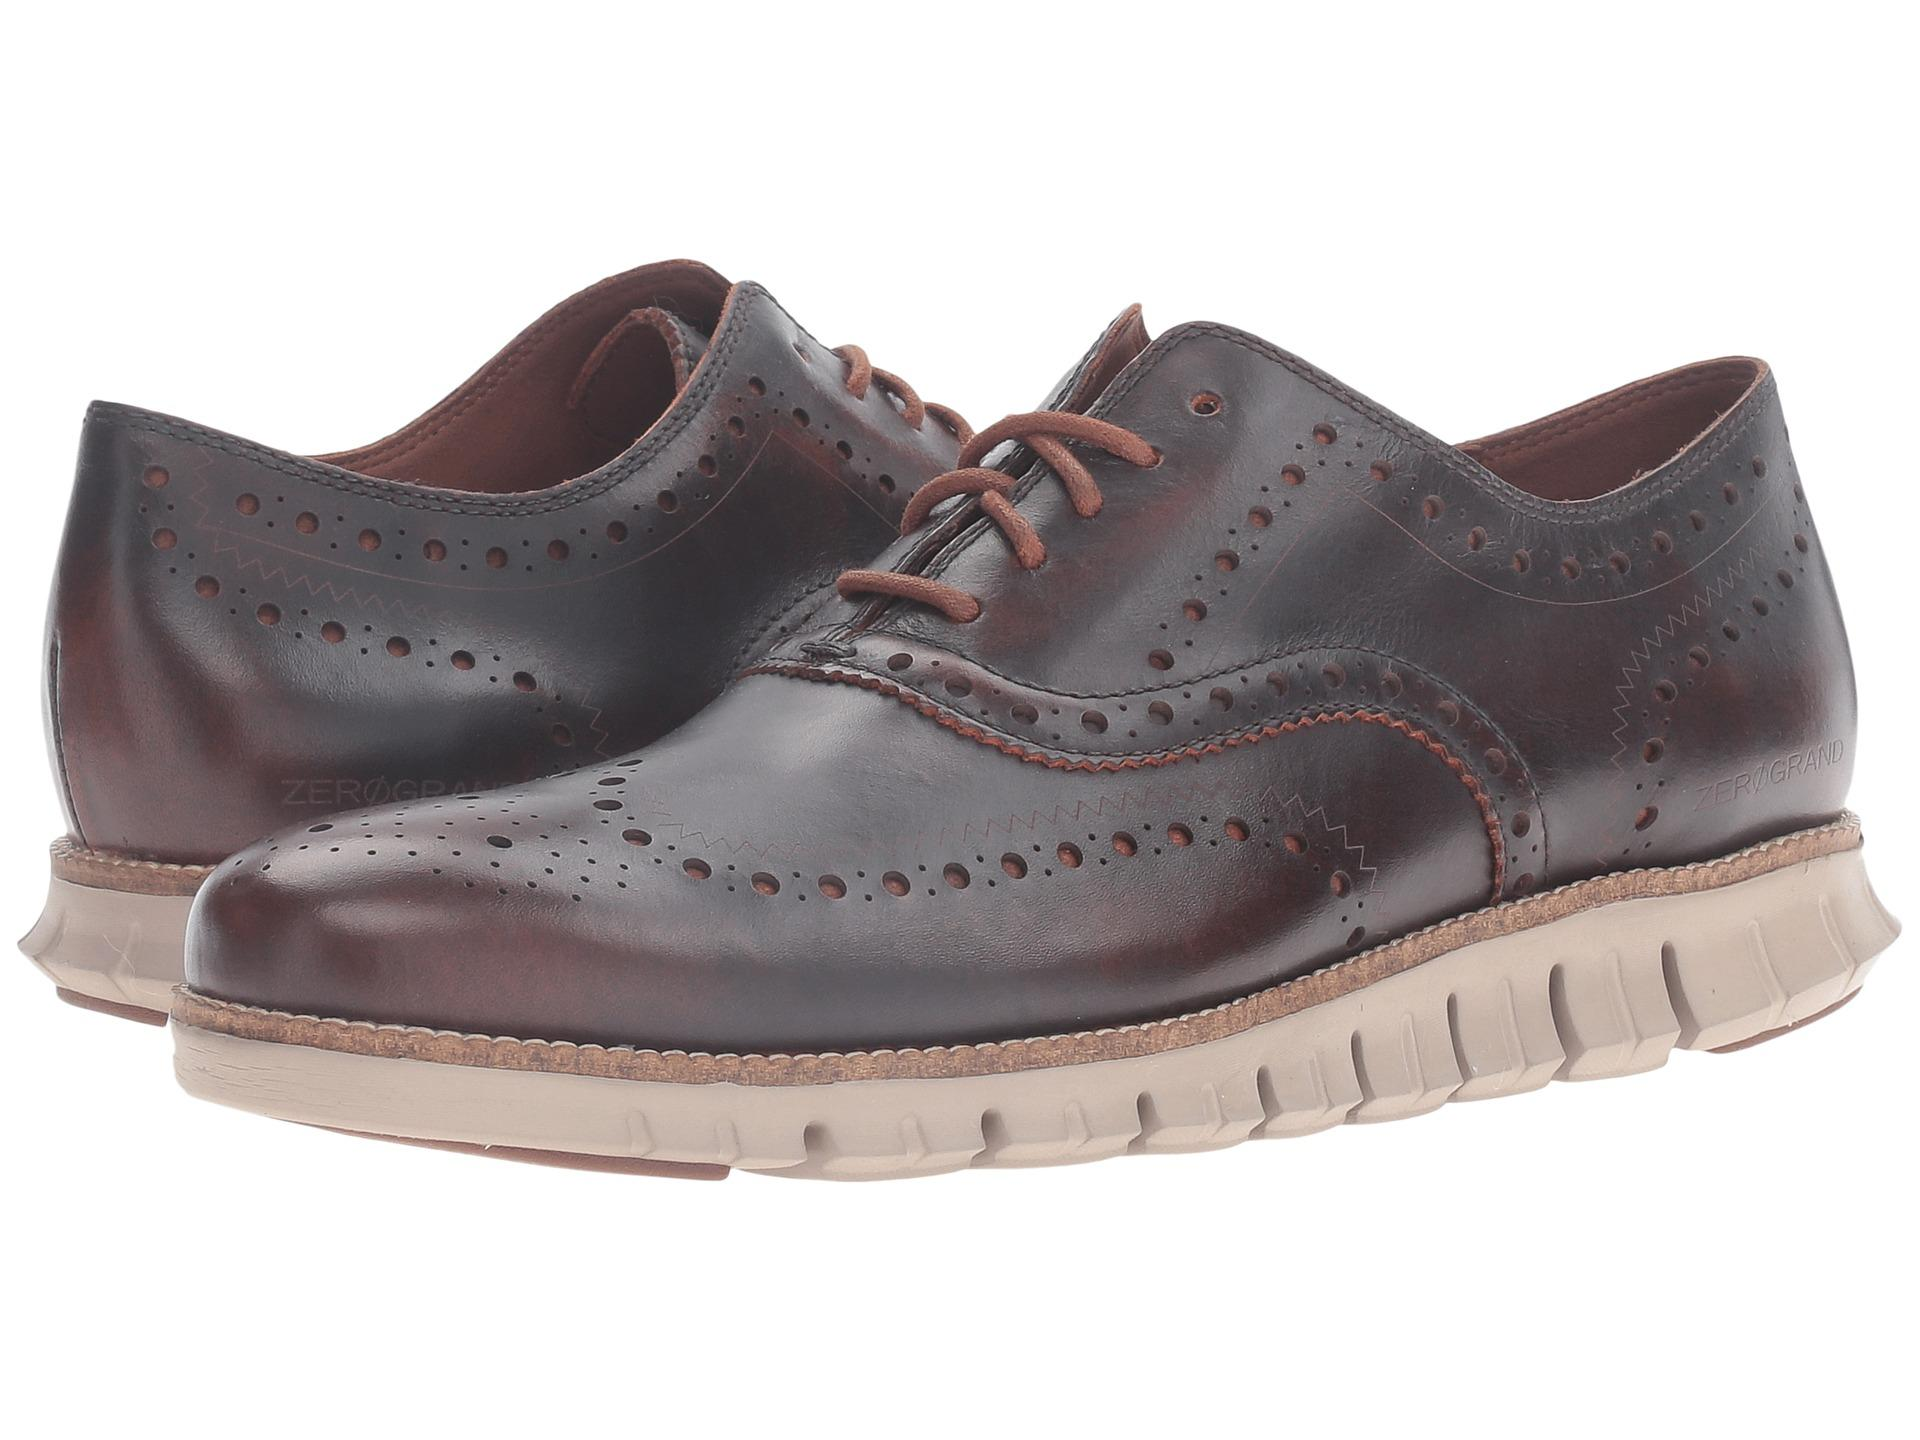 Cole Haan Zerogrand Wing Oxford In Brown For Men Lyst